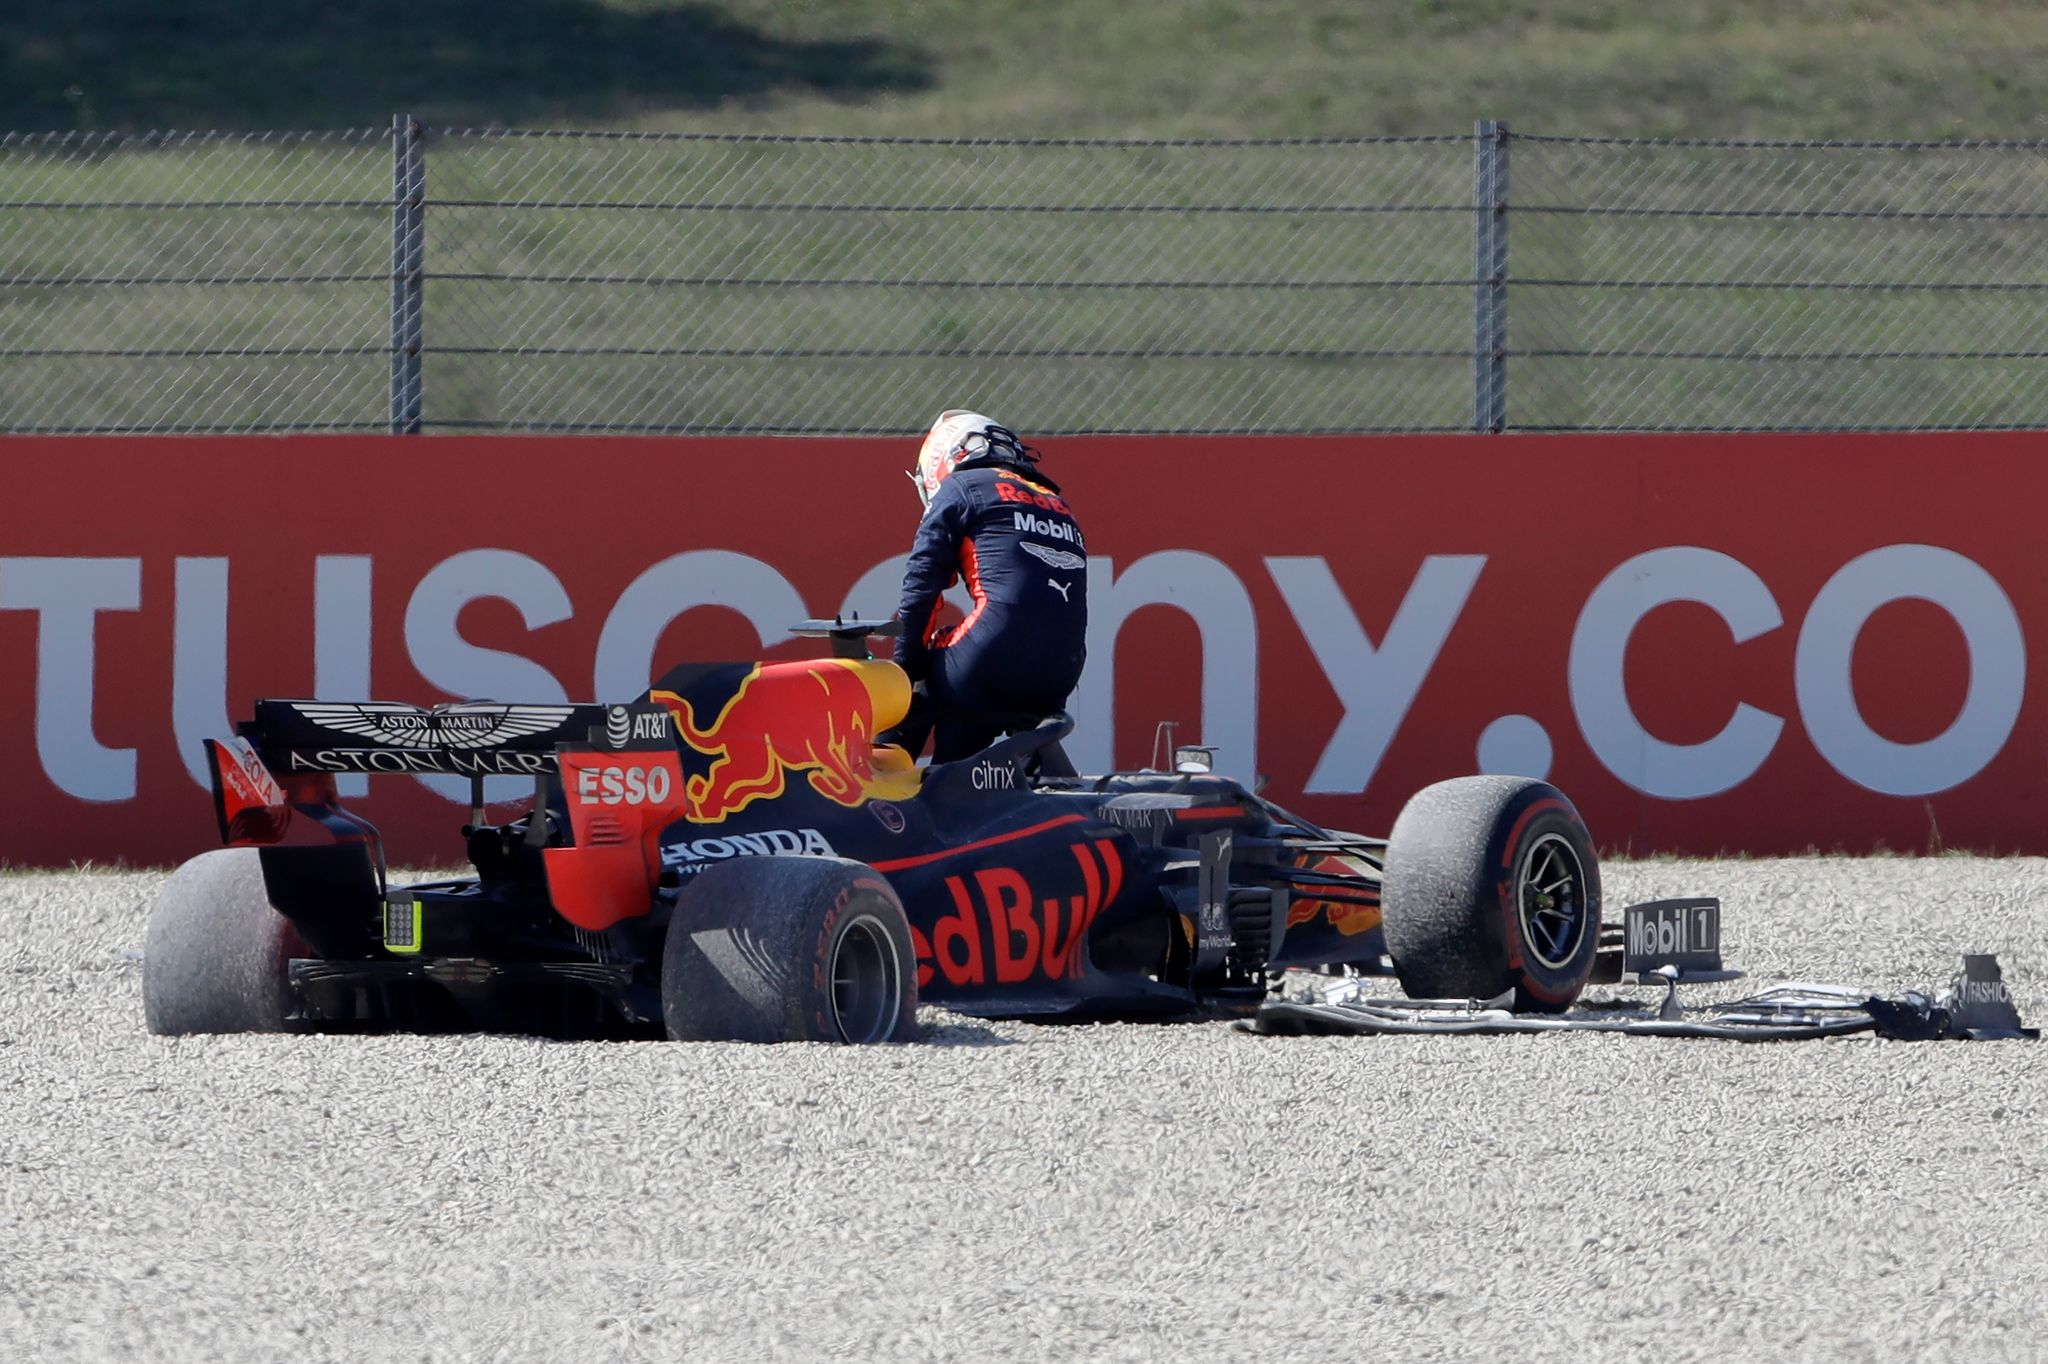 Red Bulls Dutch driver Max lt;HIT gt;Verstappen lt;/HIT gt; leaves his car after a crash during the Tuscany Formula One Grand Prix at the Mugello circuit in Scarperia e San Piero on September 13, 2020. (Photo by Luca Bruno / POOL / AFP)